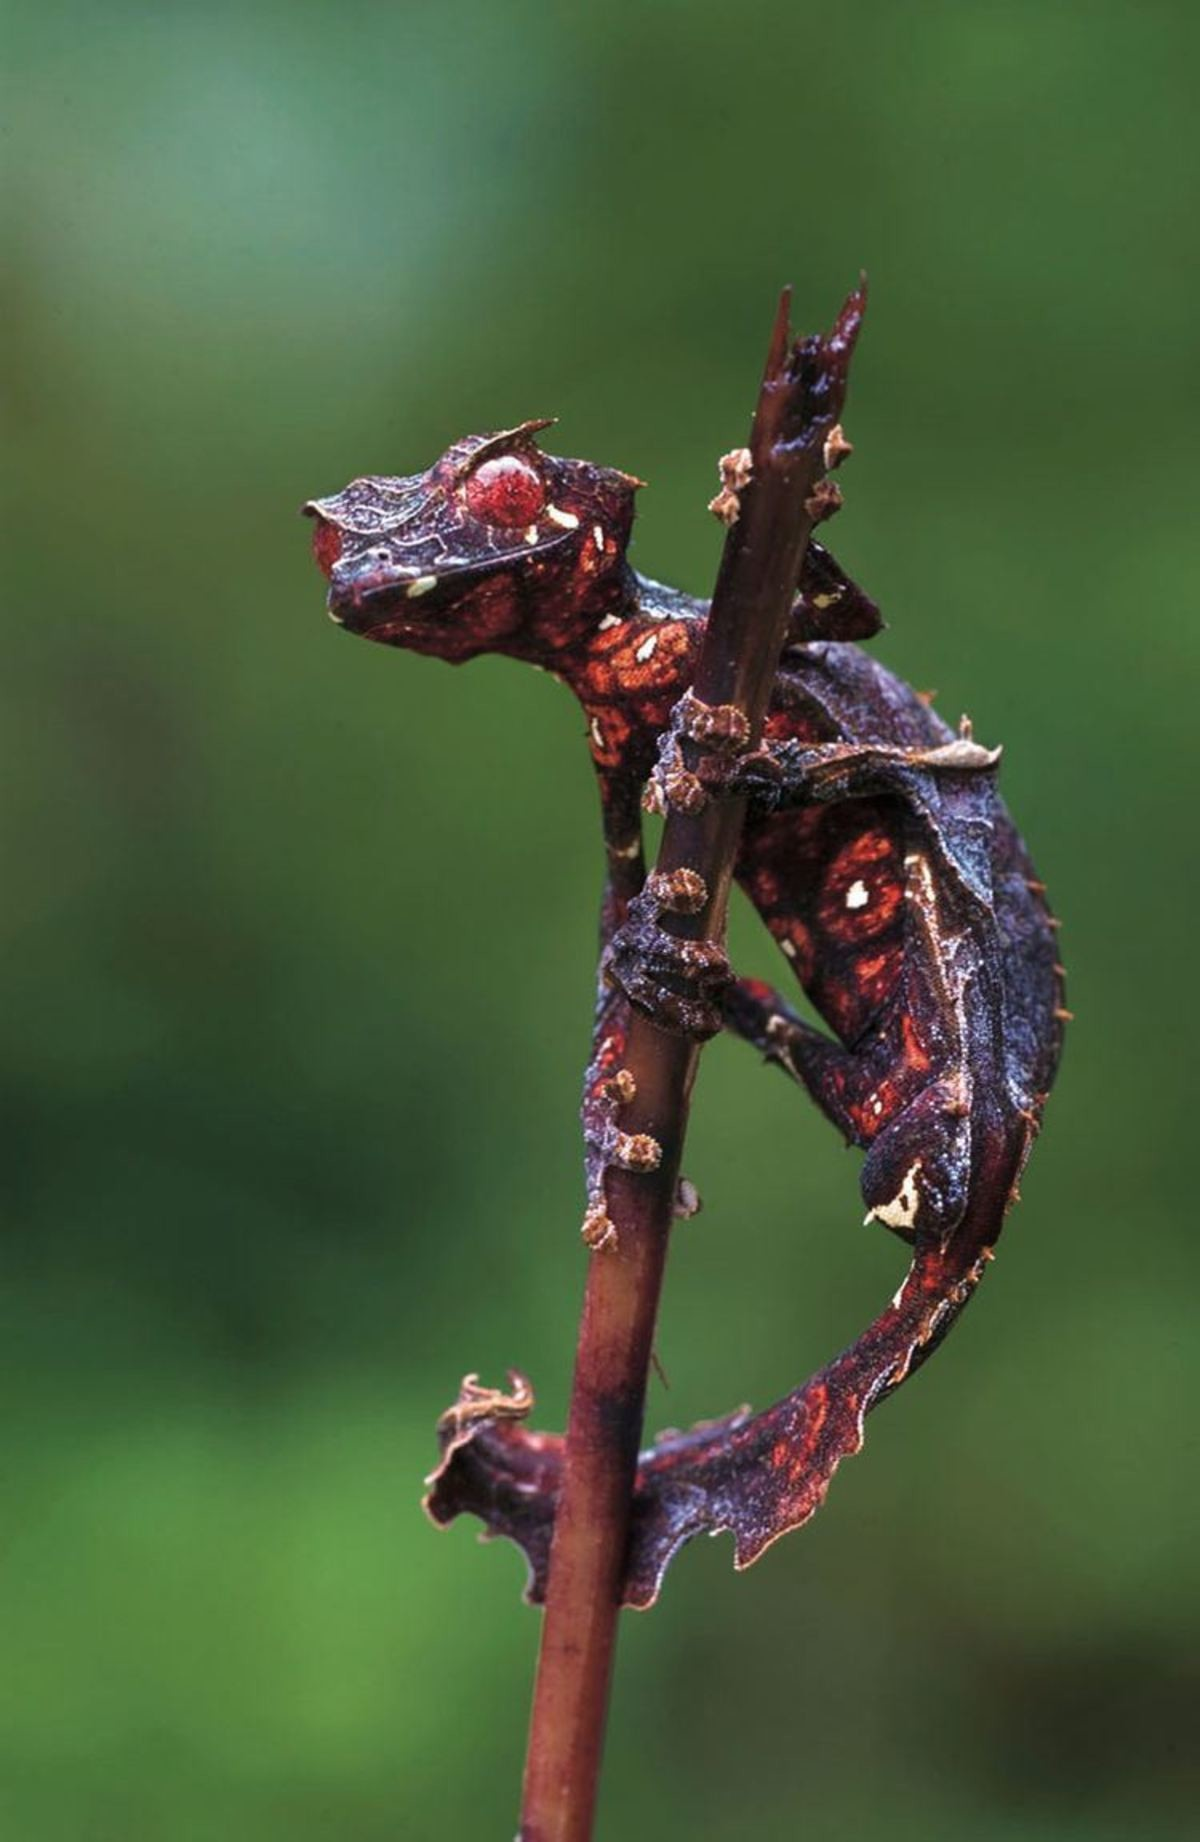 Satanic Leaf-Tailed Gecko. .. I'm pretty sure that's just a pokemon.